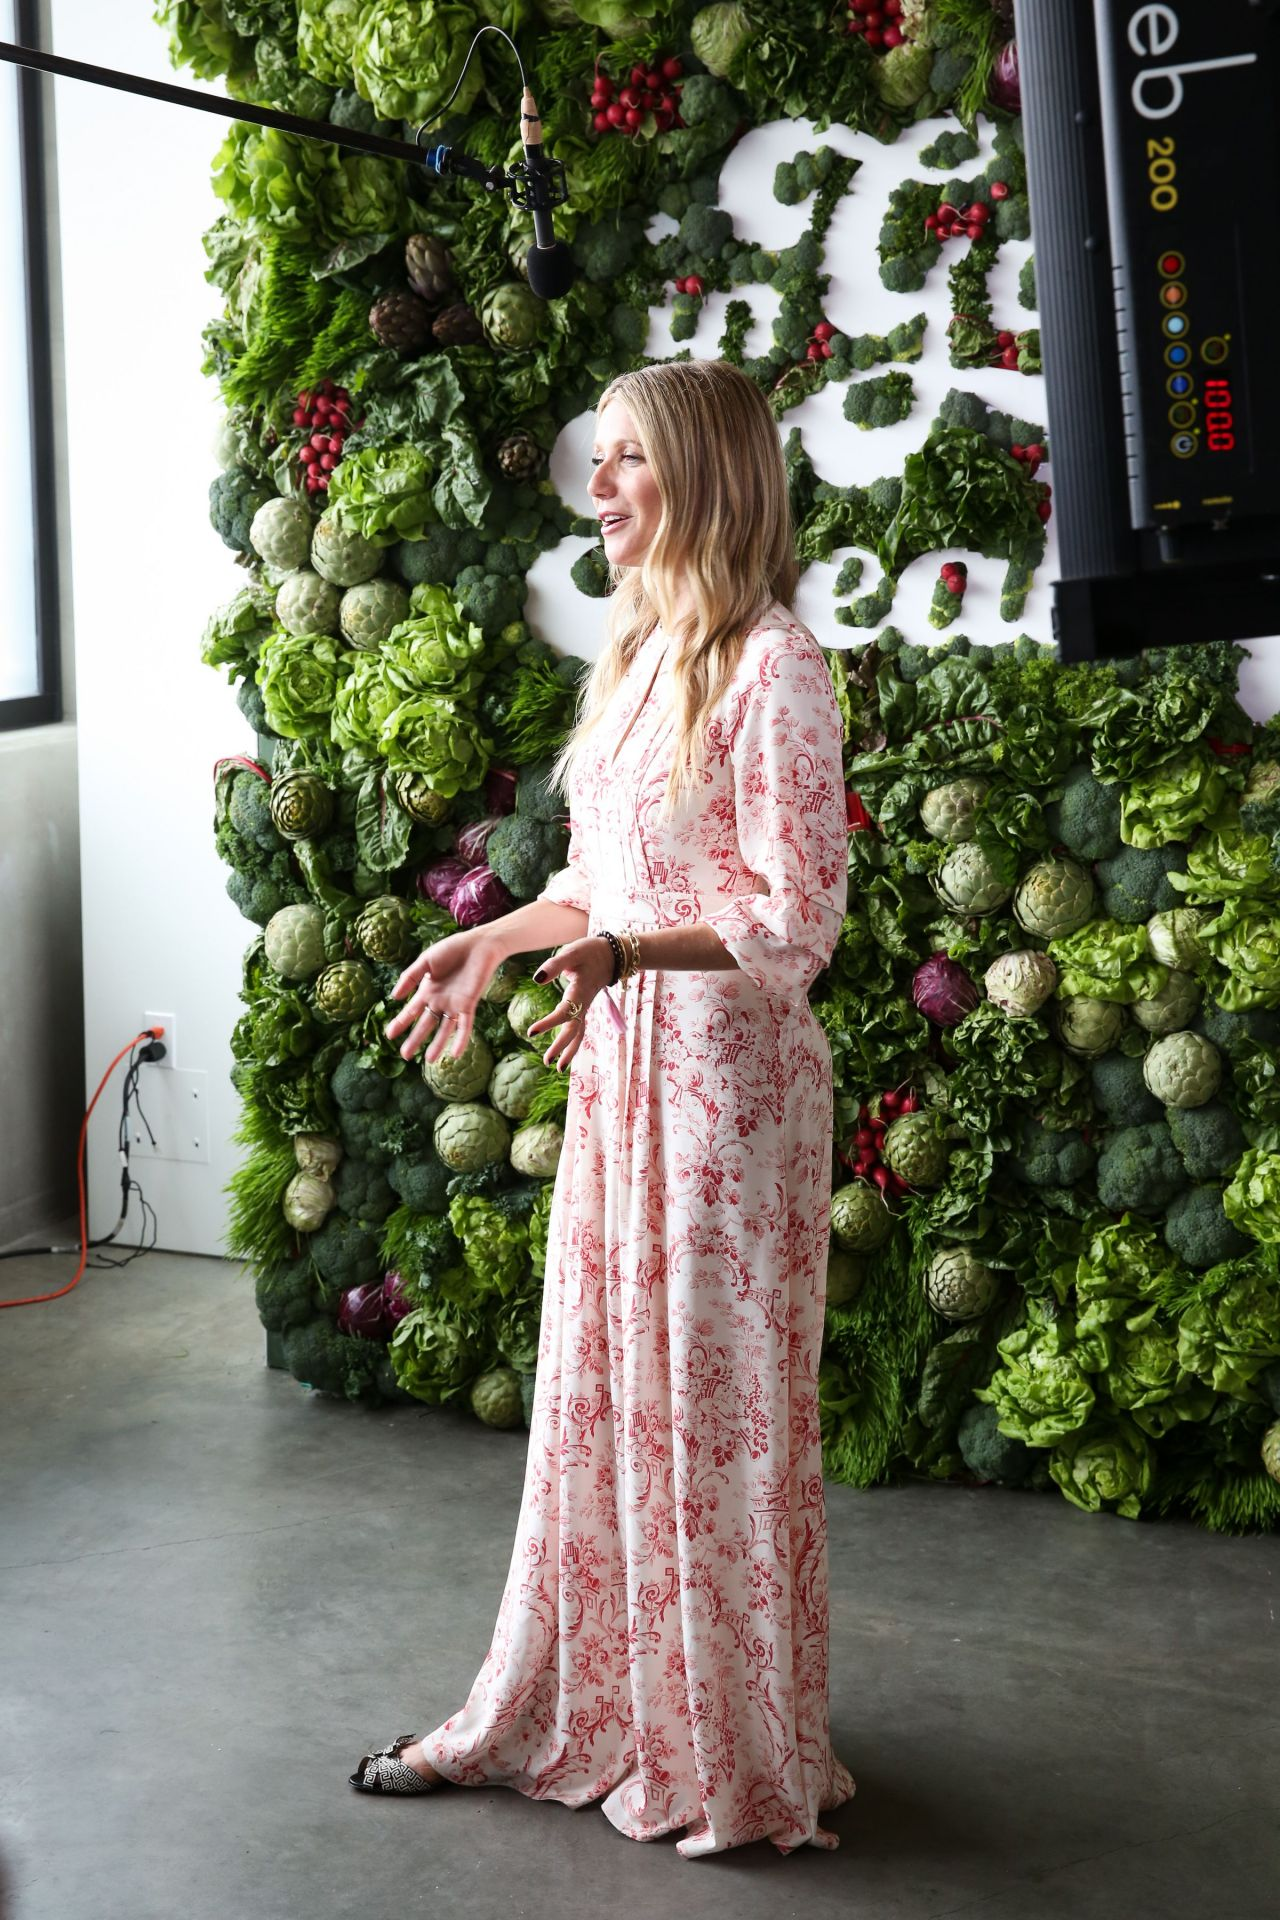 Gwyneth Paltrow Quot In Goop Health Quot Event In Los Angeles 06 10 2017